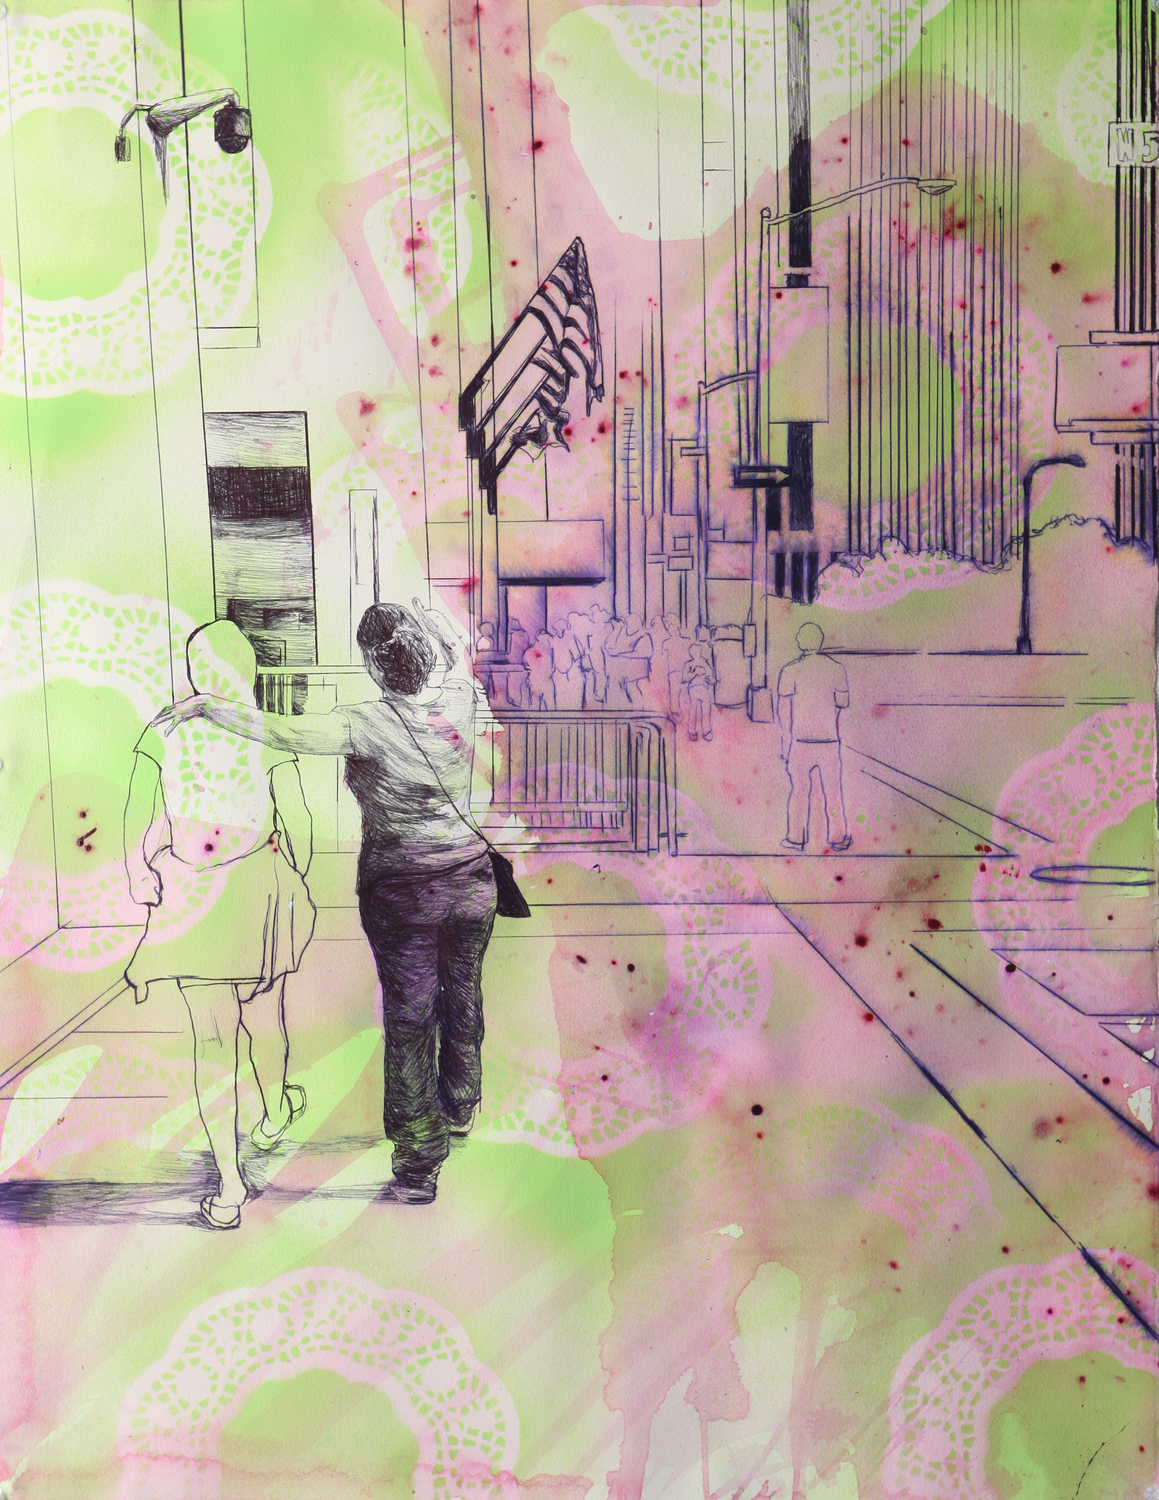 Two Doors Down – Works by Jennifer Basile and Bianca Pratorius